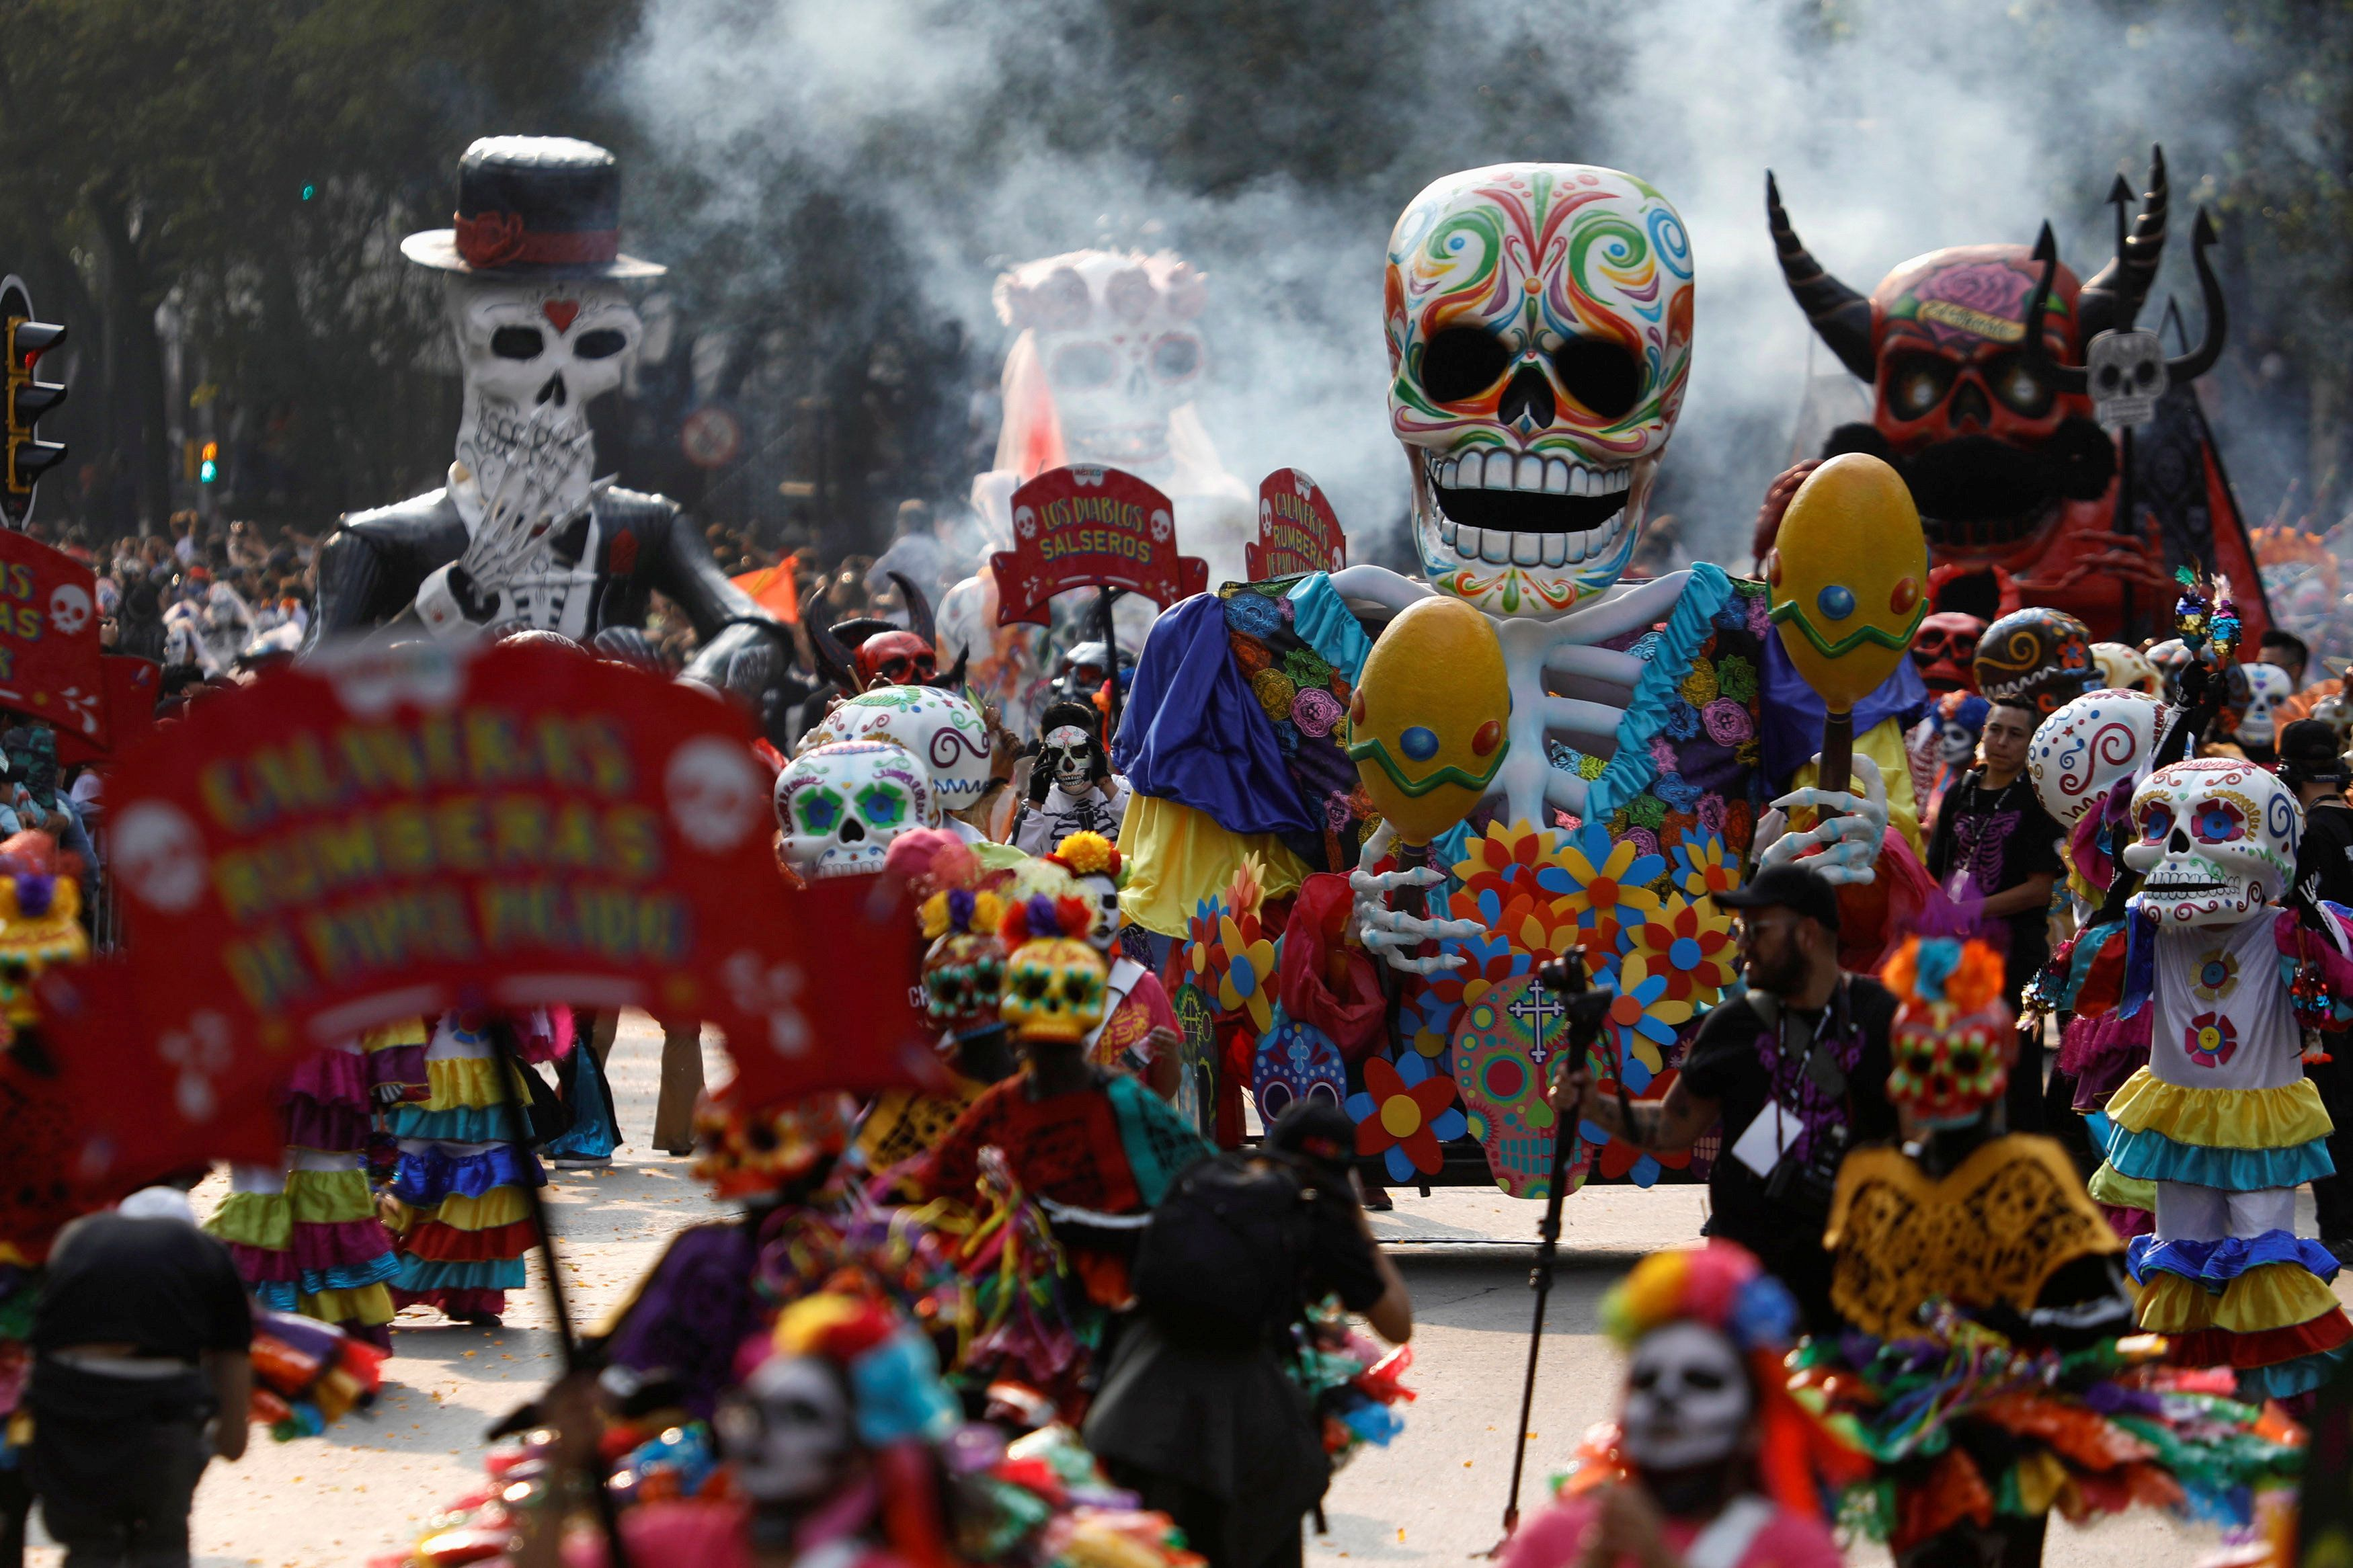 Skull figures are seen during a procession to commemorate Day of the Dead in Mexico City, Mexico, October 28, 2017. REUTERS/Edgard Garrido